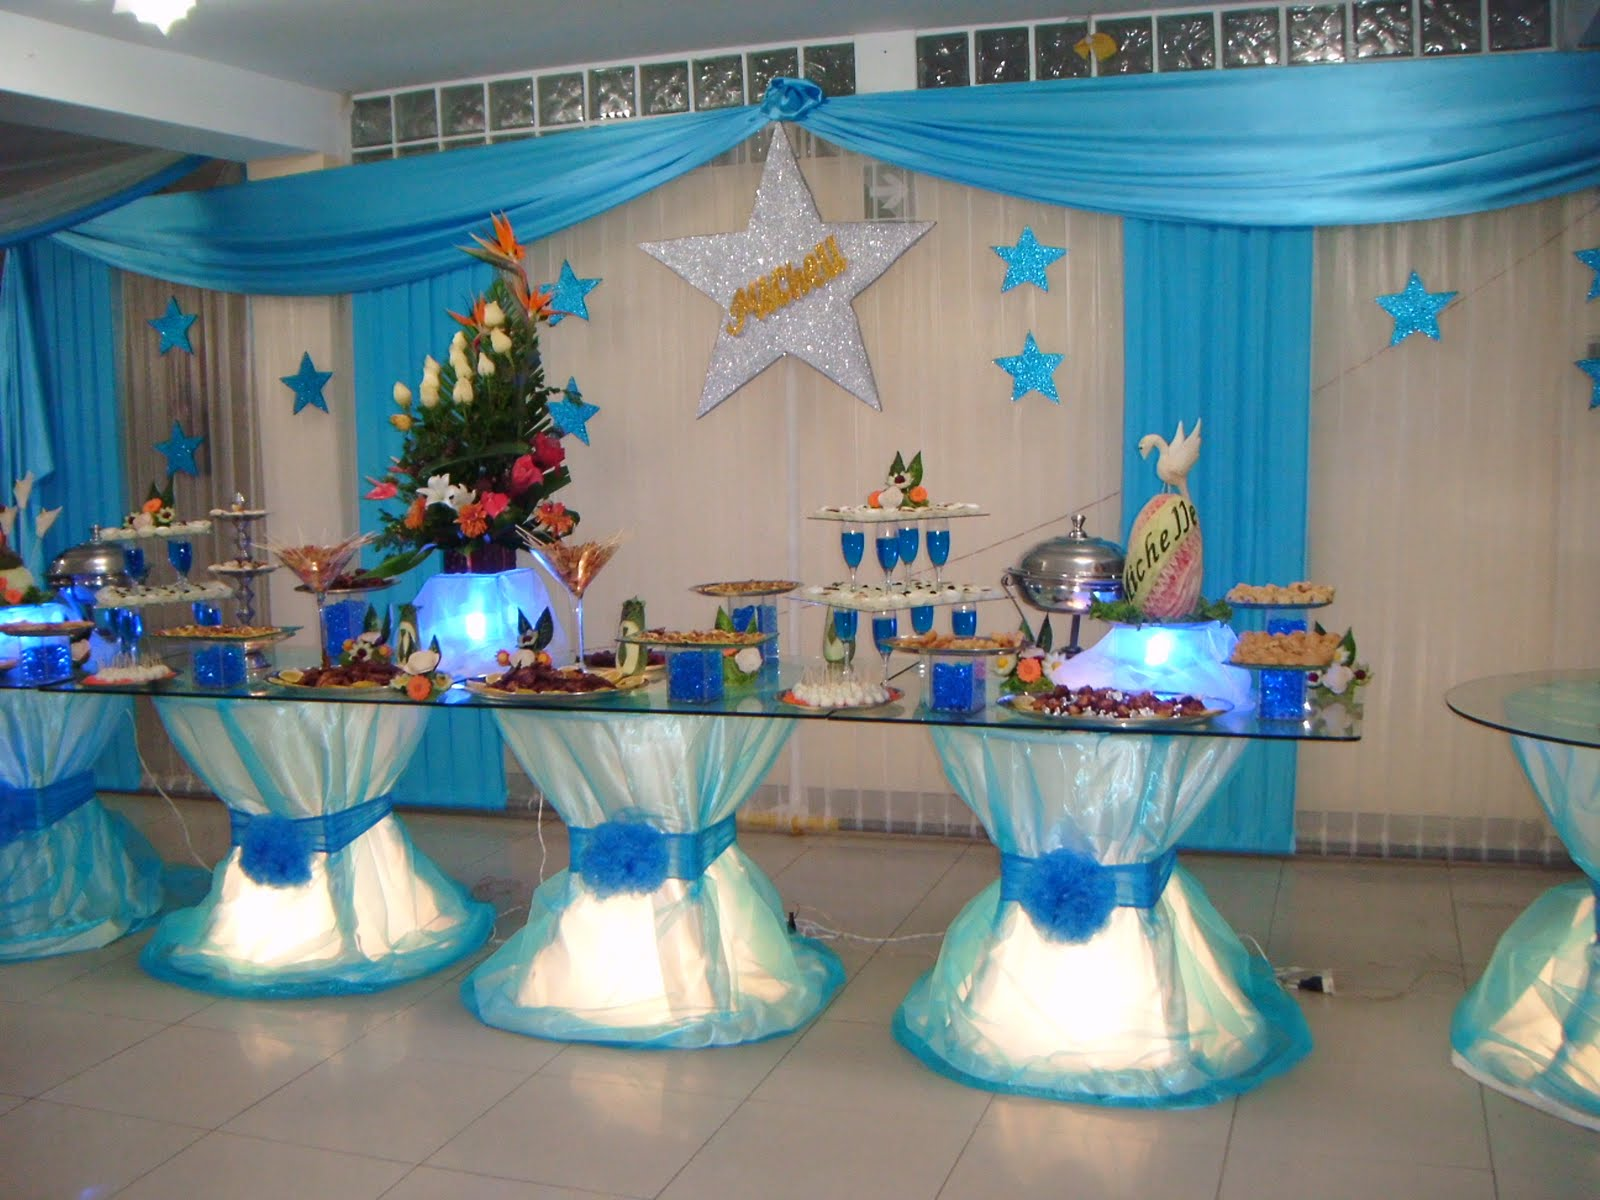 Decoracion quincea eras modernos for Decoracion quinceanera